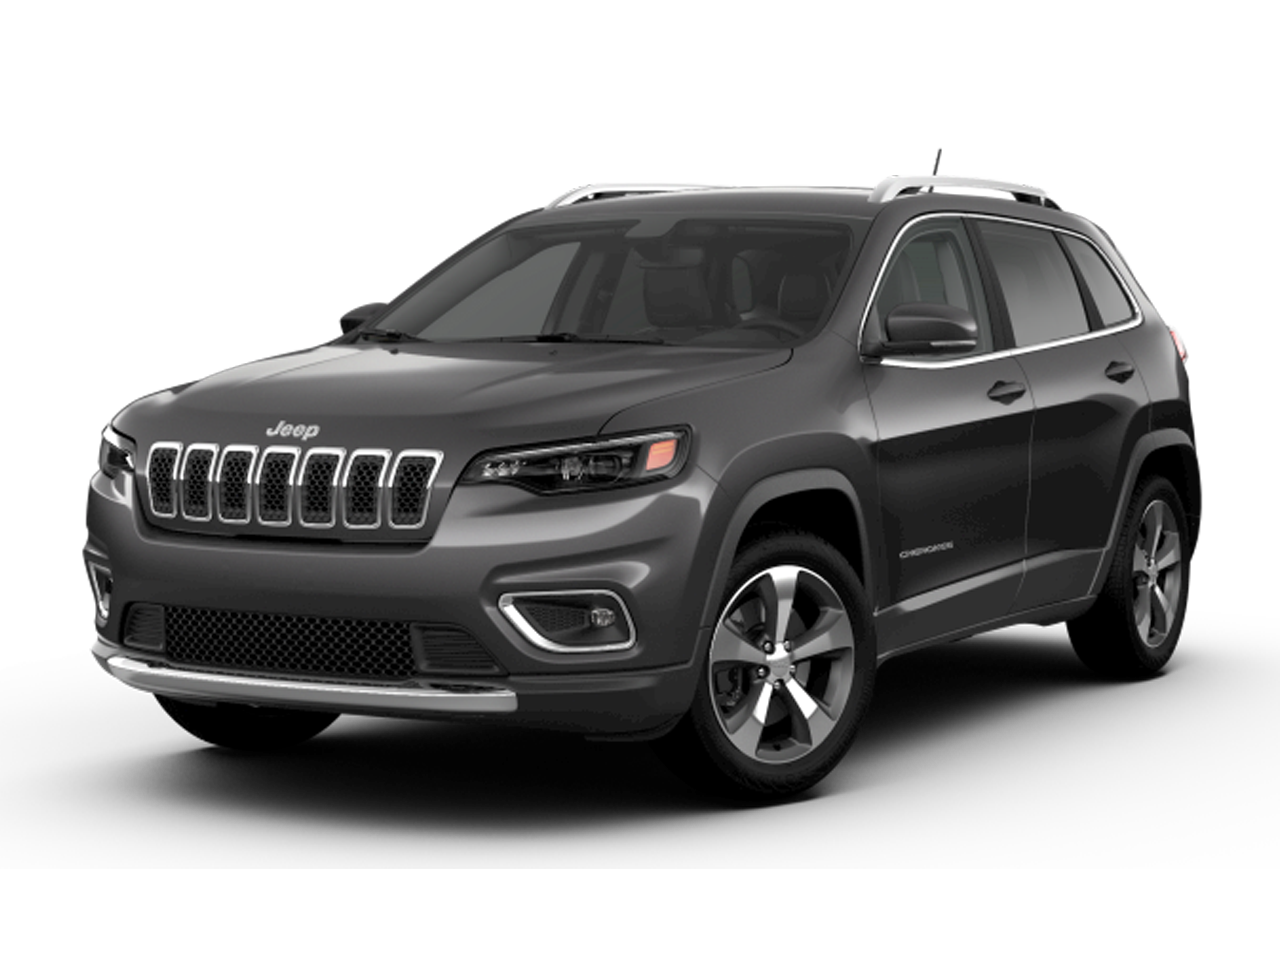 Jeep cherokee png. For sale new